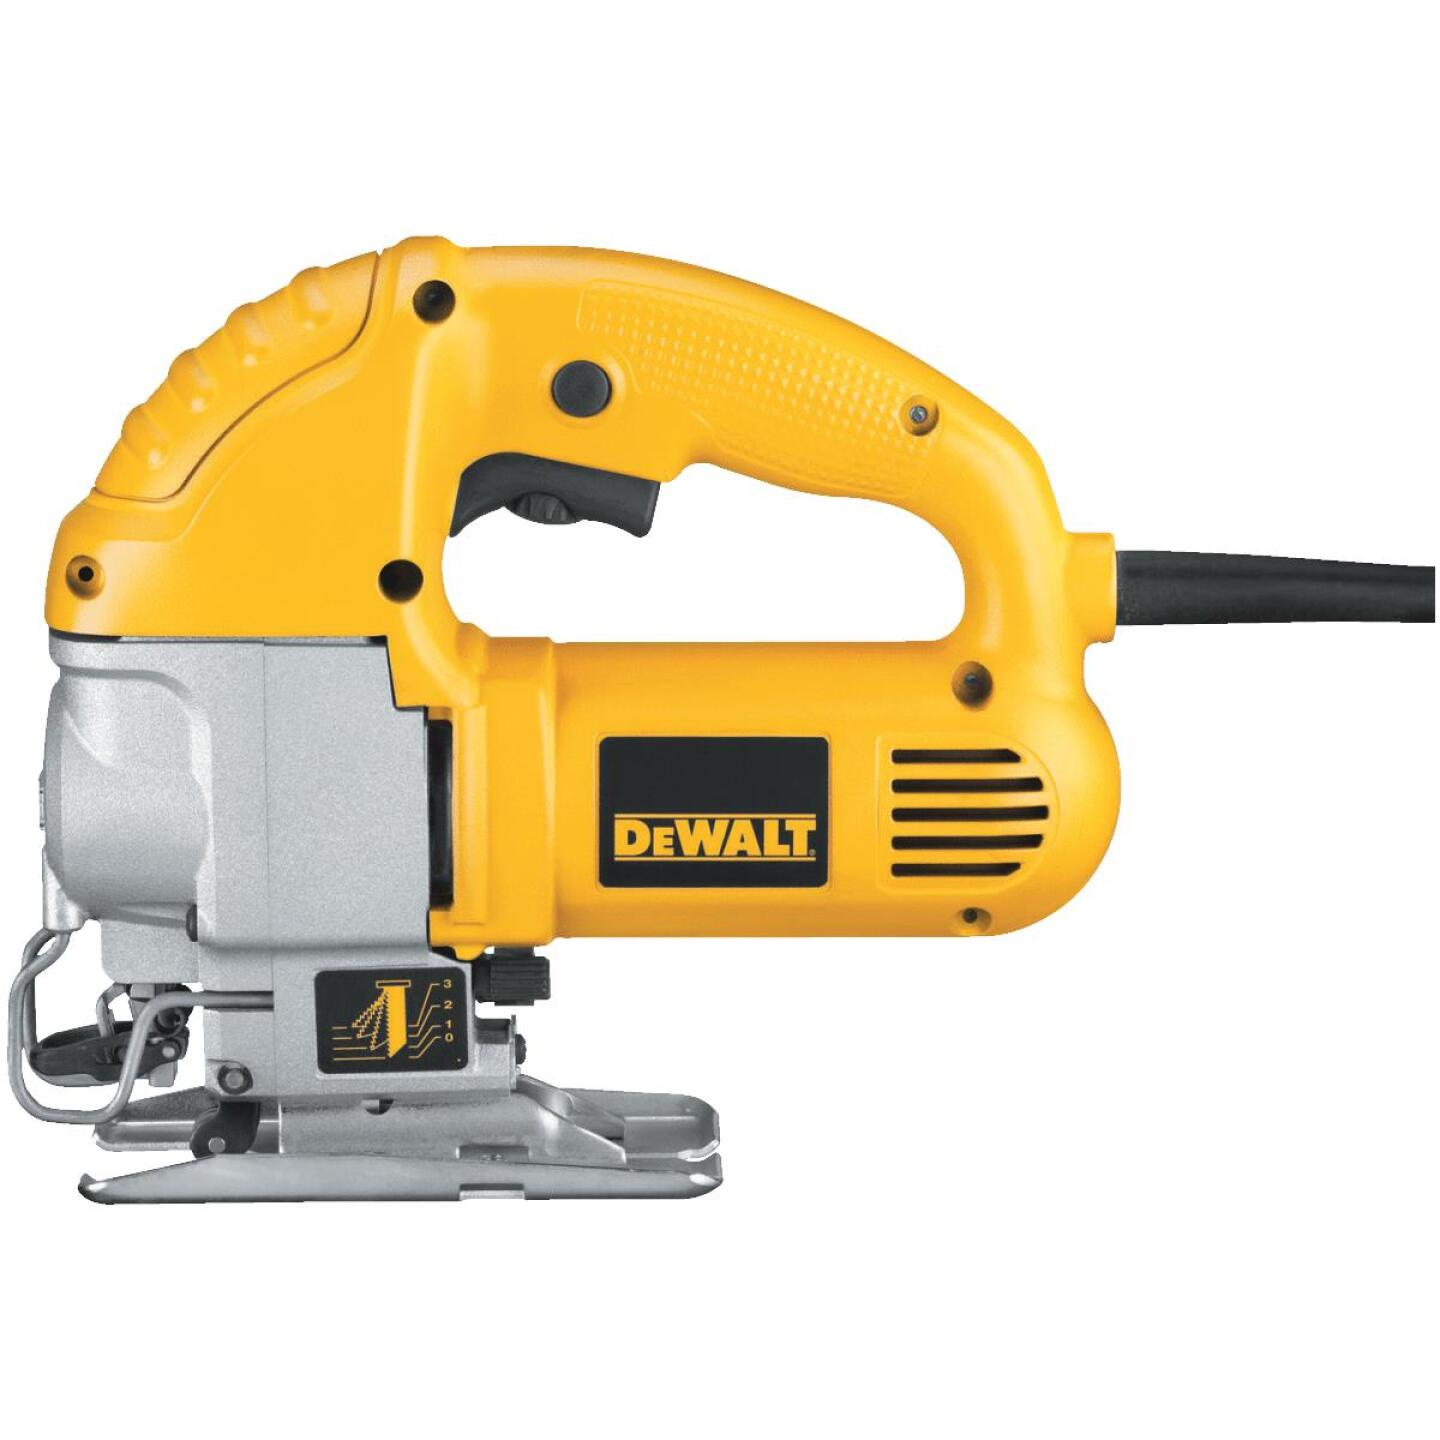 DeWalt 5.5A 4-Position 0 to 3100 SPM Jig Saw Image 9